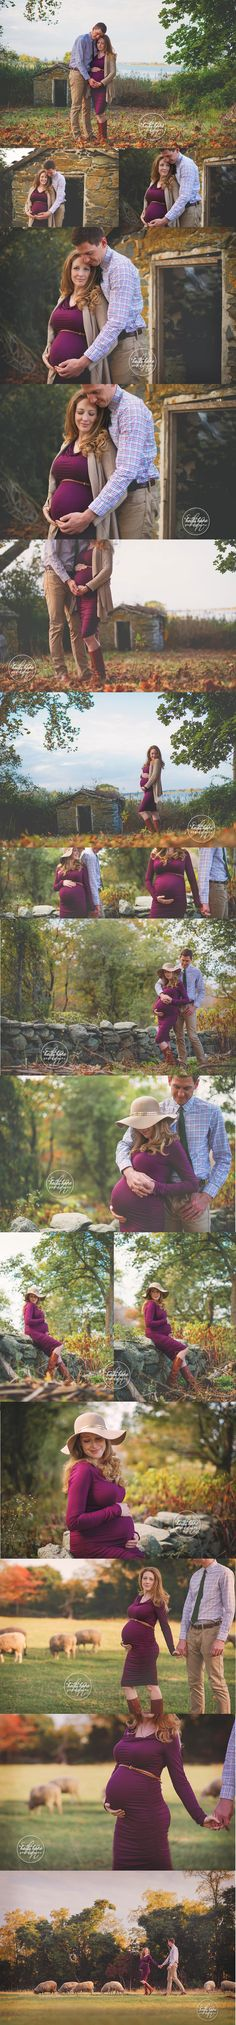 rhode-island-autumn-maternity-session-at-coggeshall-farm-in-bristol-1